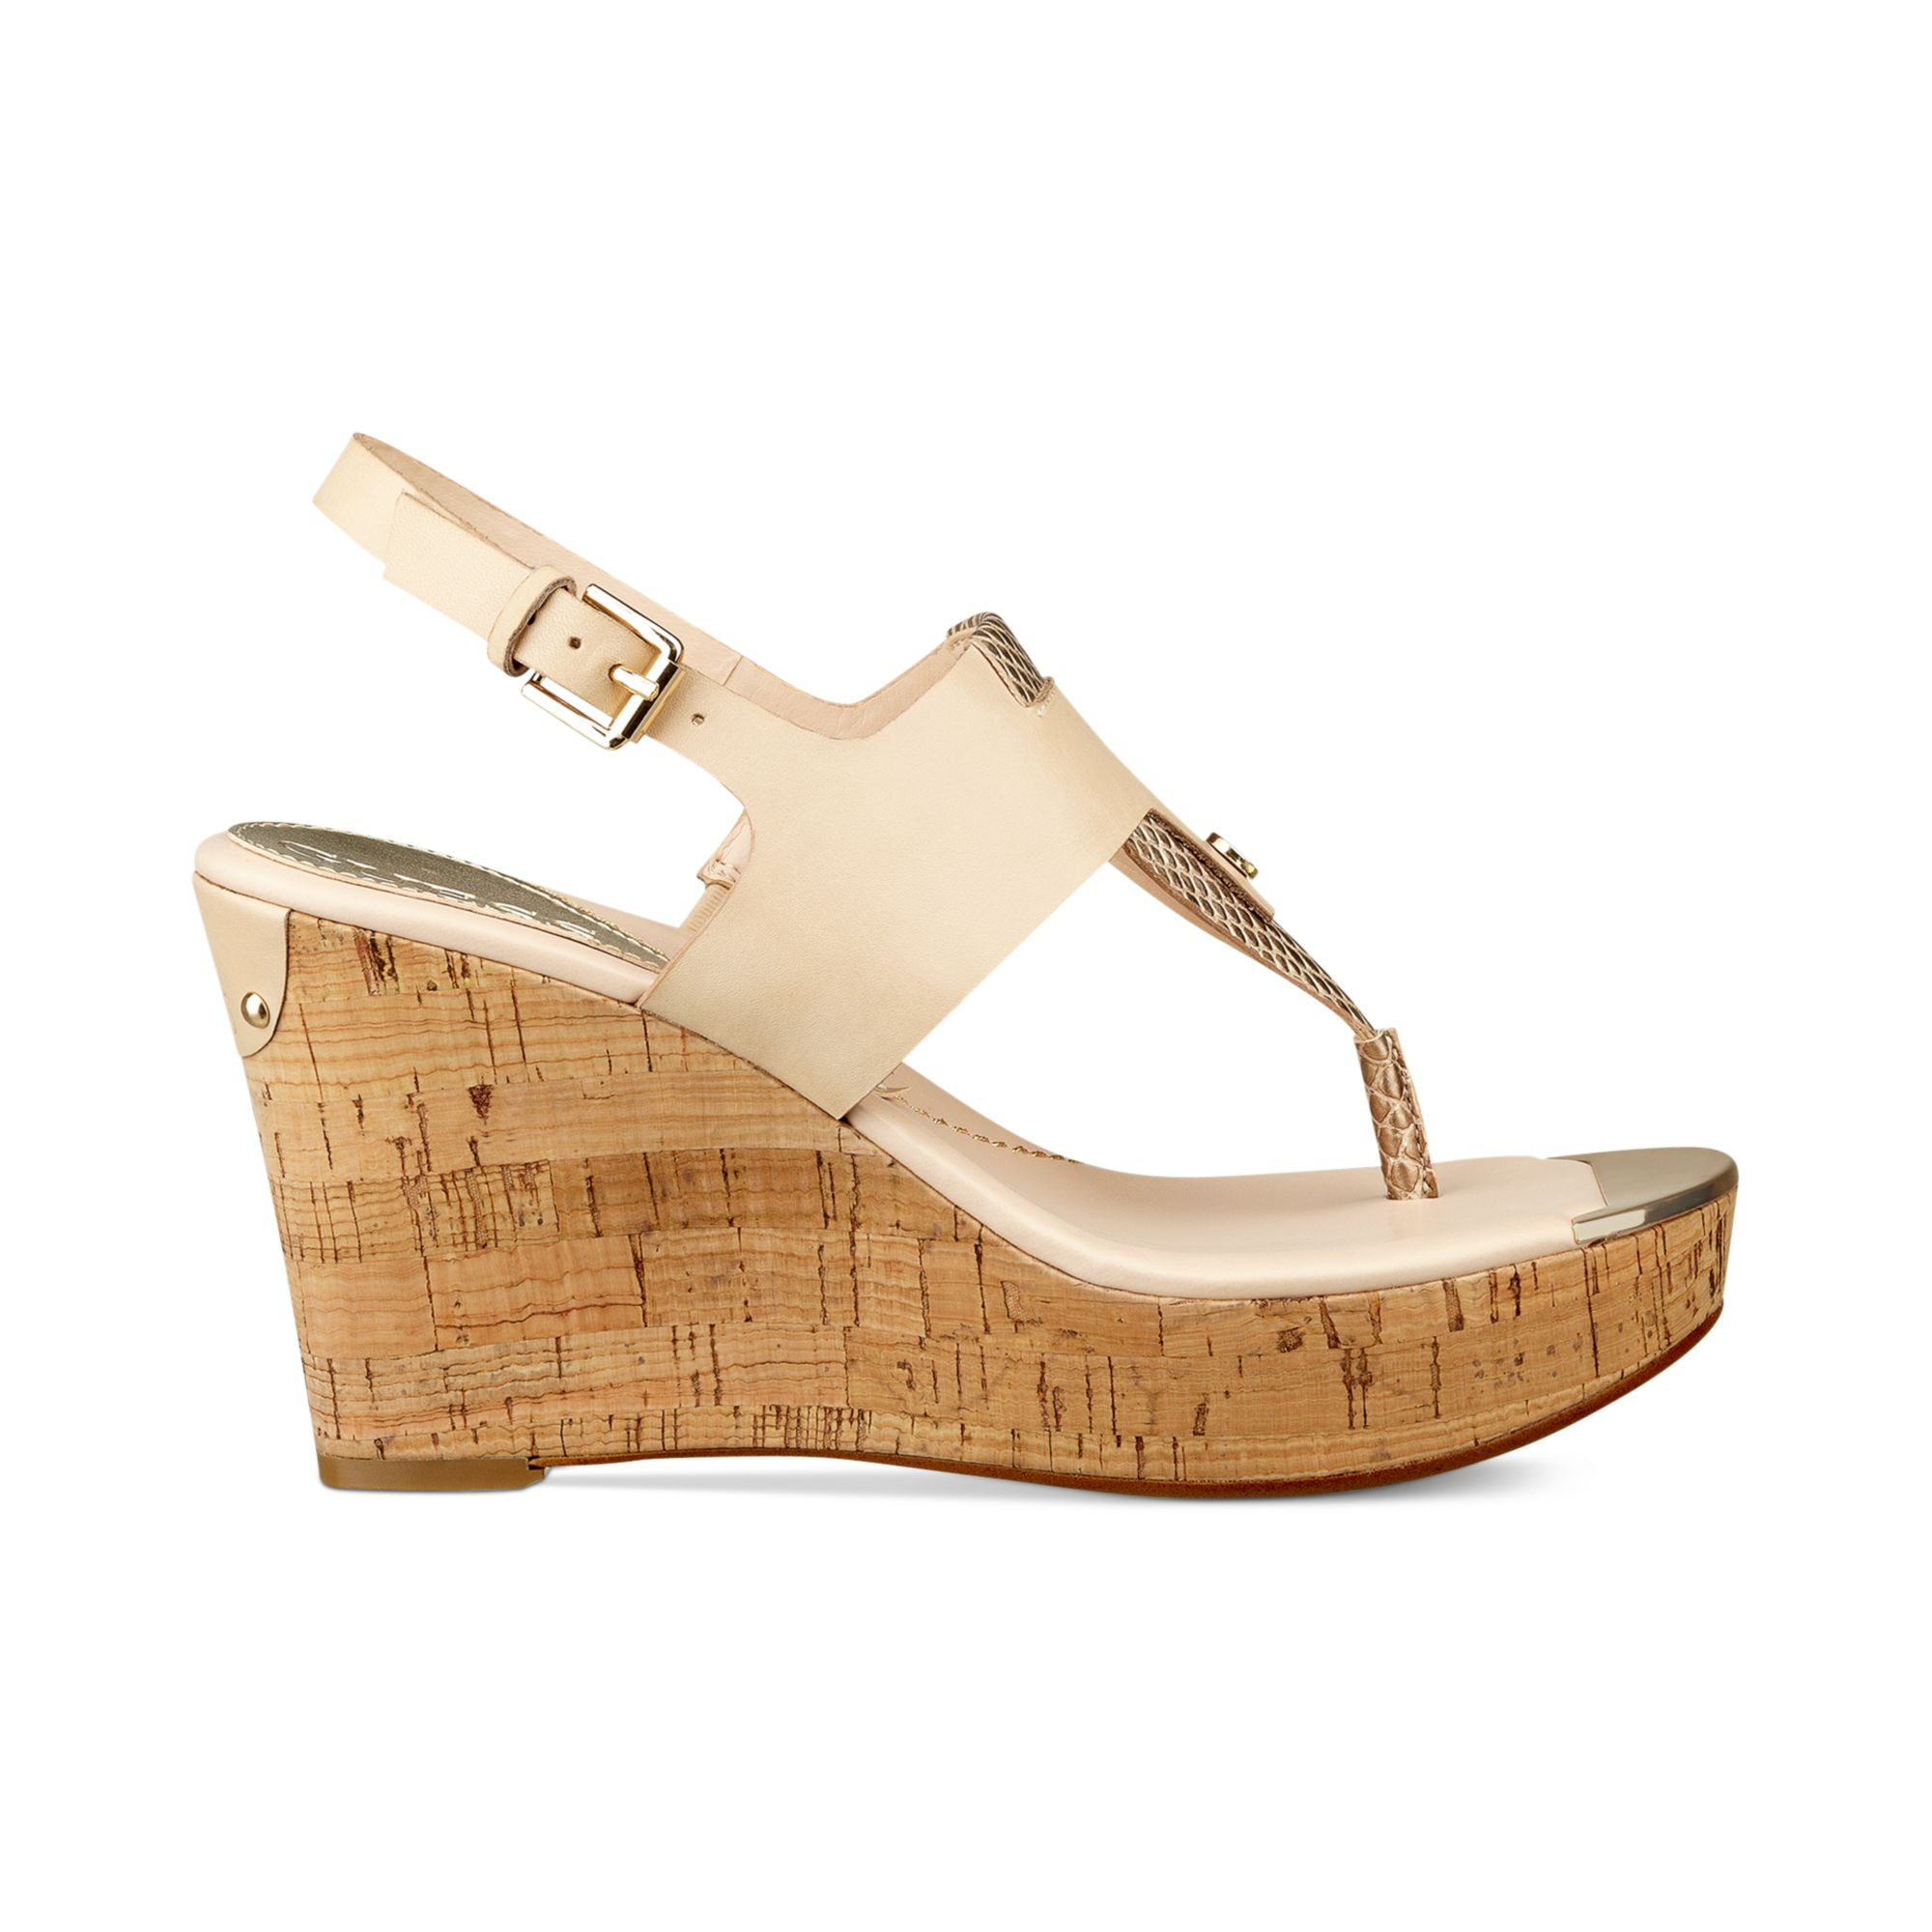 c2a202f809bf1 Lyst - Guess Magli Platform Wedge Thong Sandals in Natural